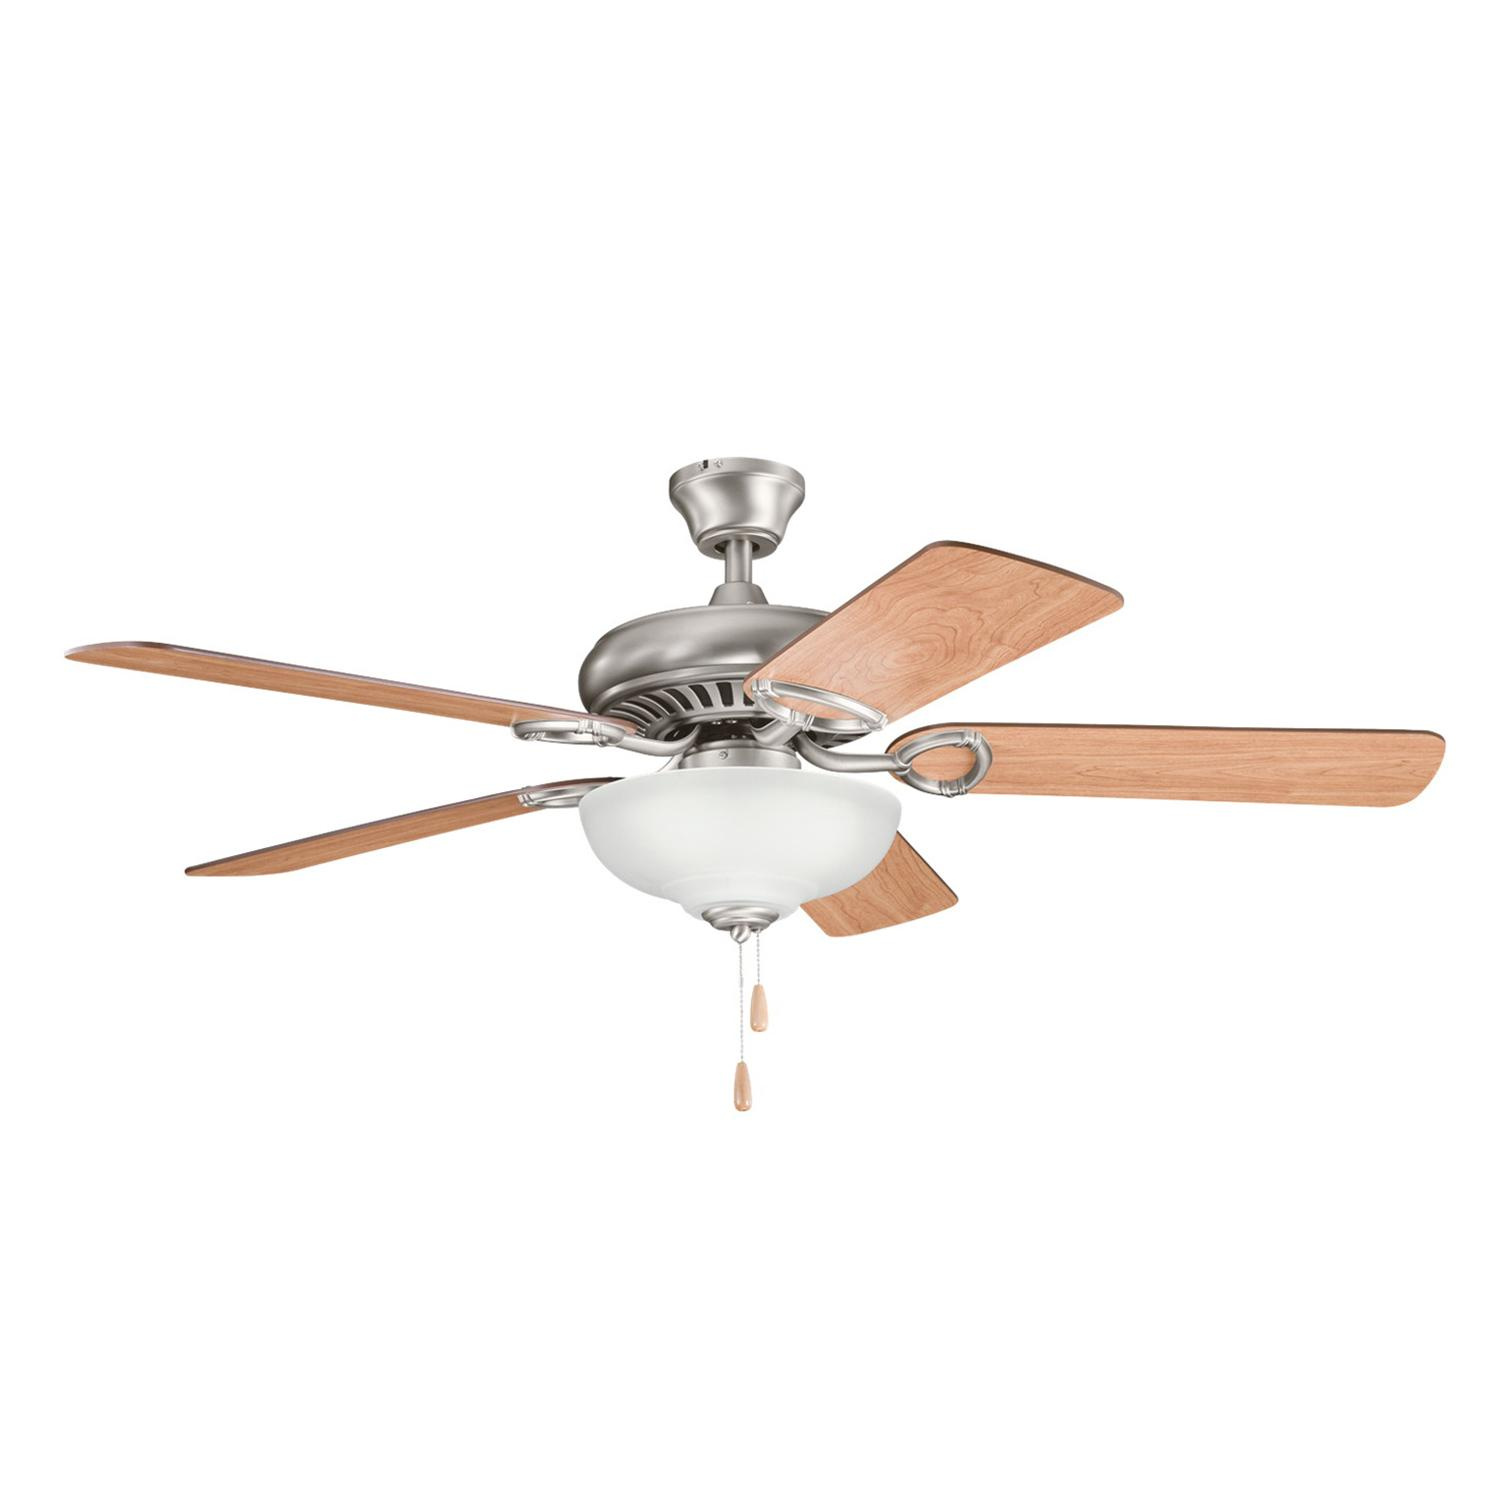 hight resolution of kichler 339211ap sutter place select ceiling fan with light 52 inch 5 blade antique pewter